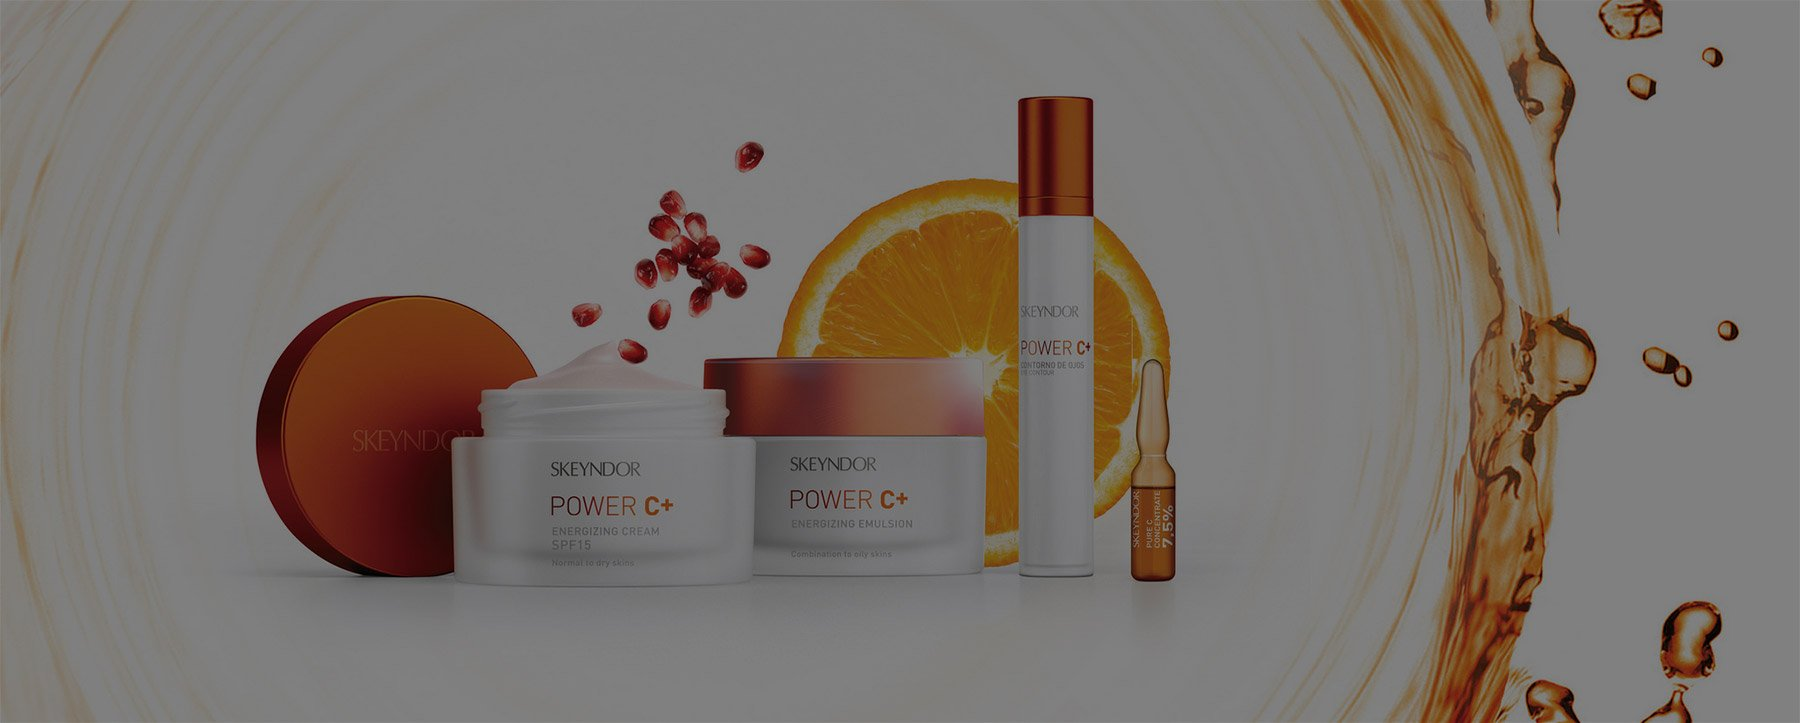 New Skeyndor Power C+ Products at Lisa Harris Skin Science